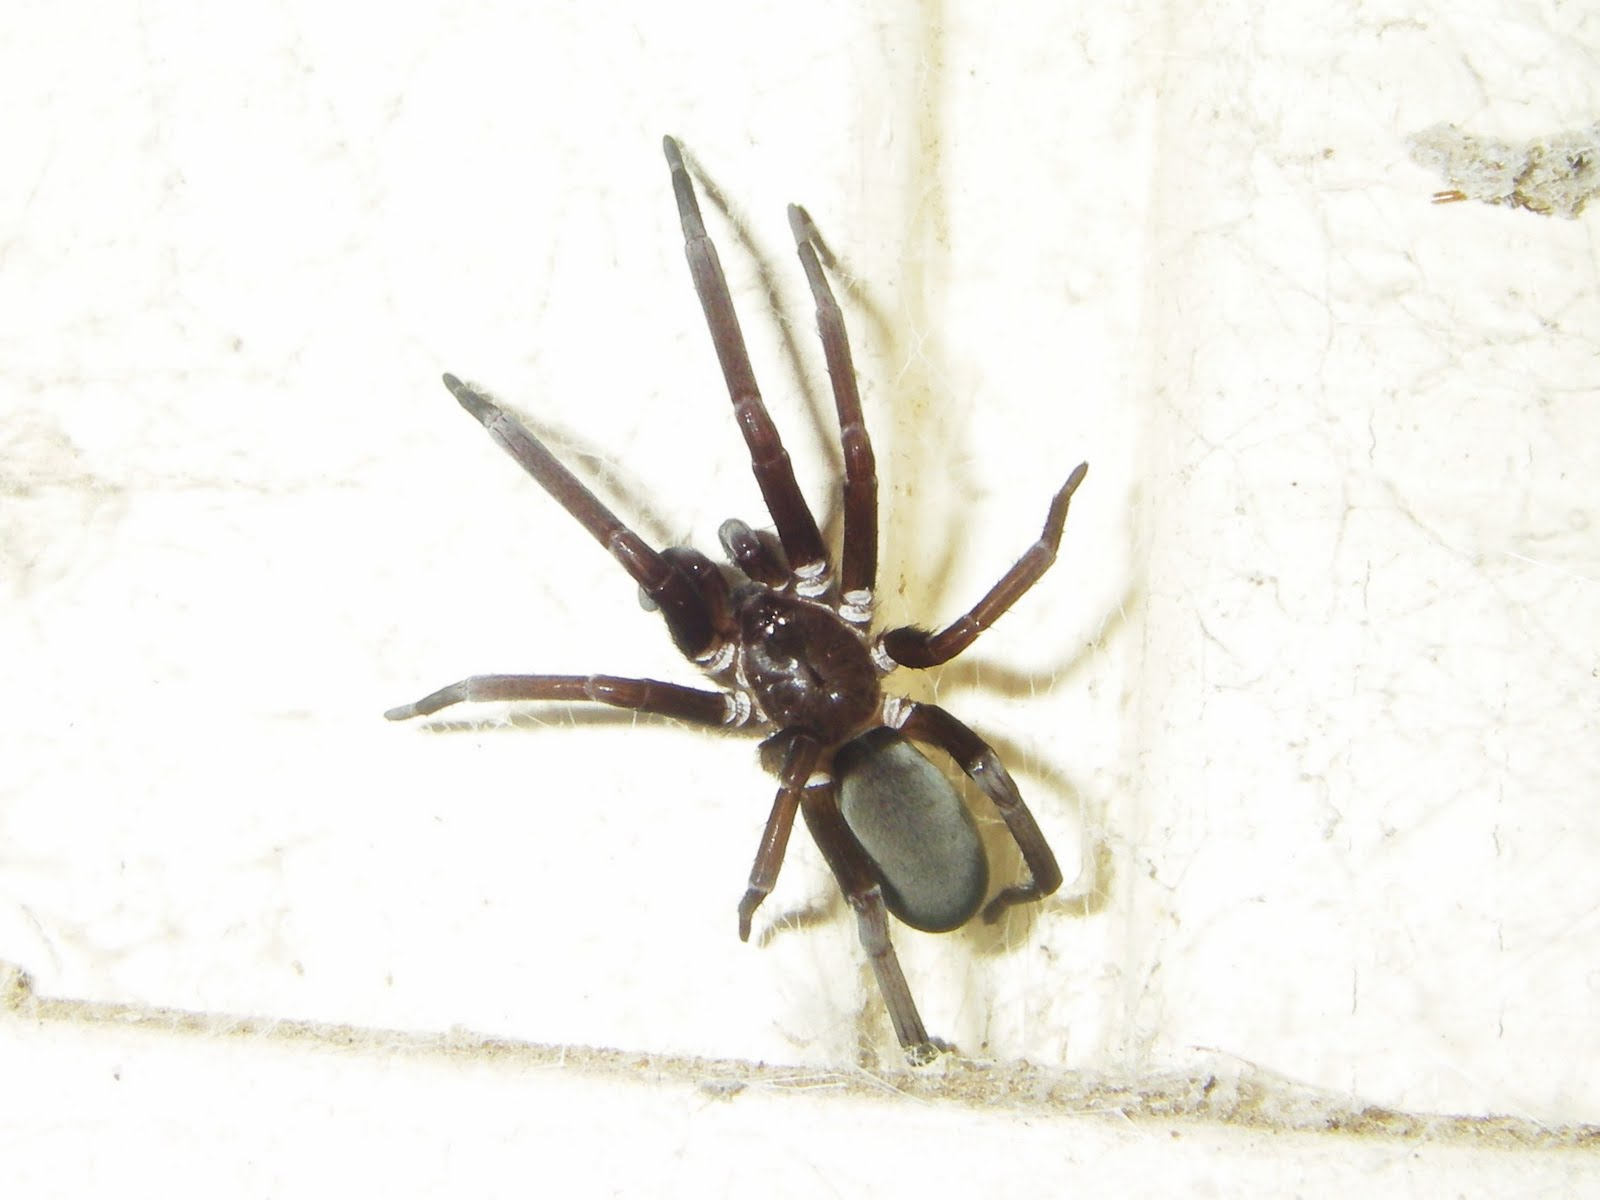 Ecographica: Fuzzy pictures of fuzzy spiders